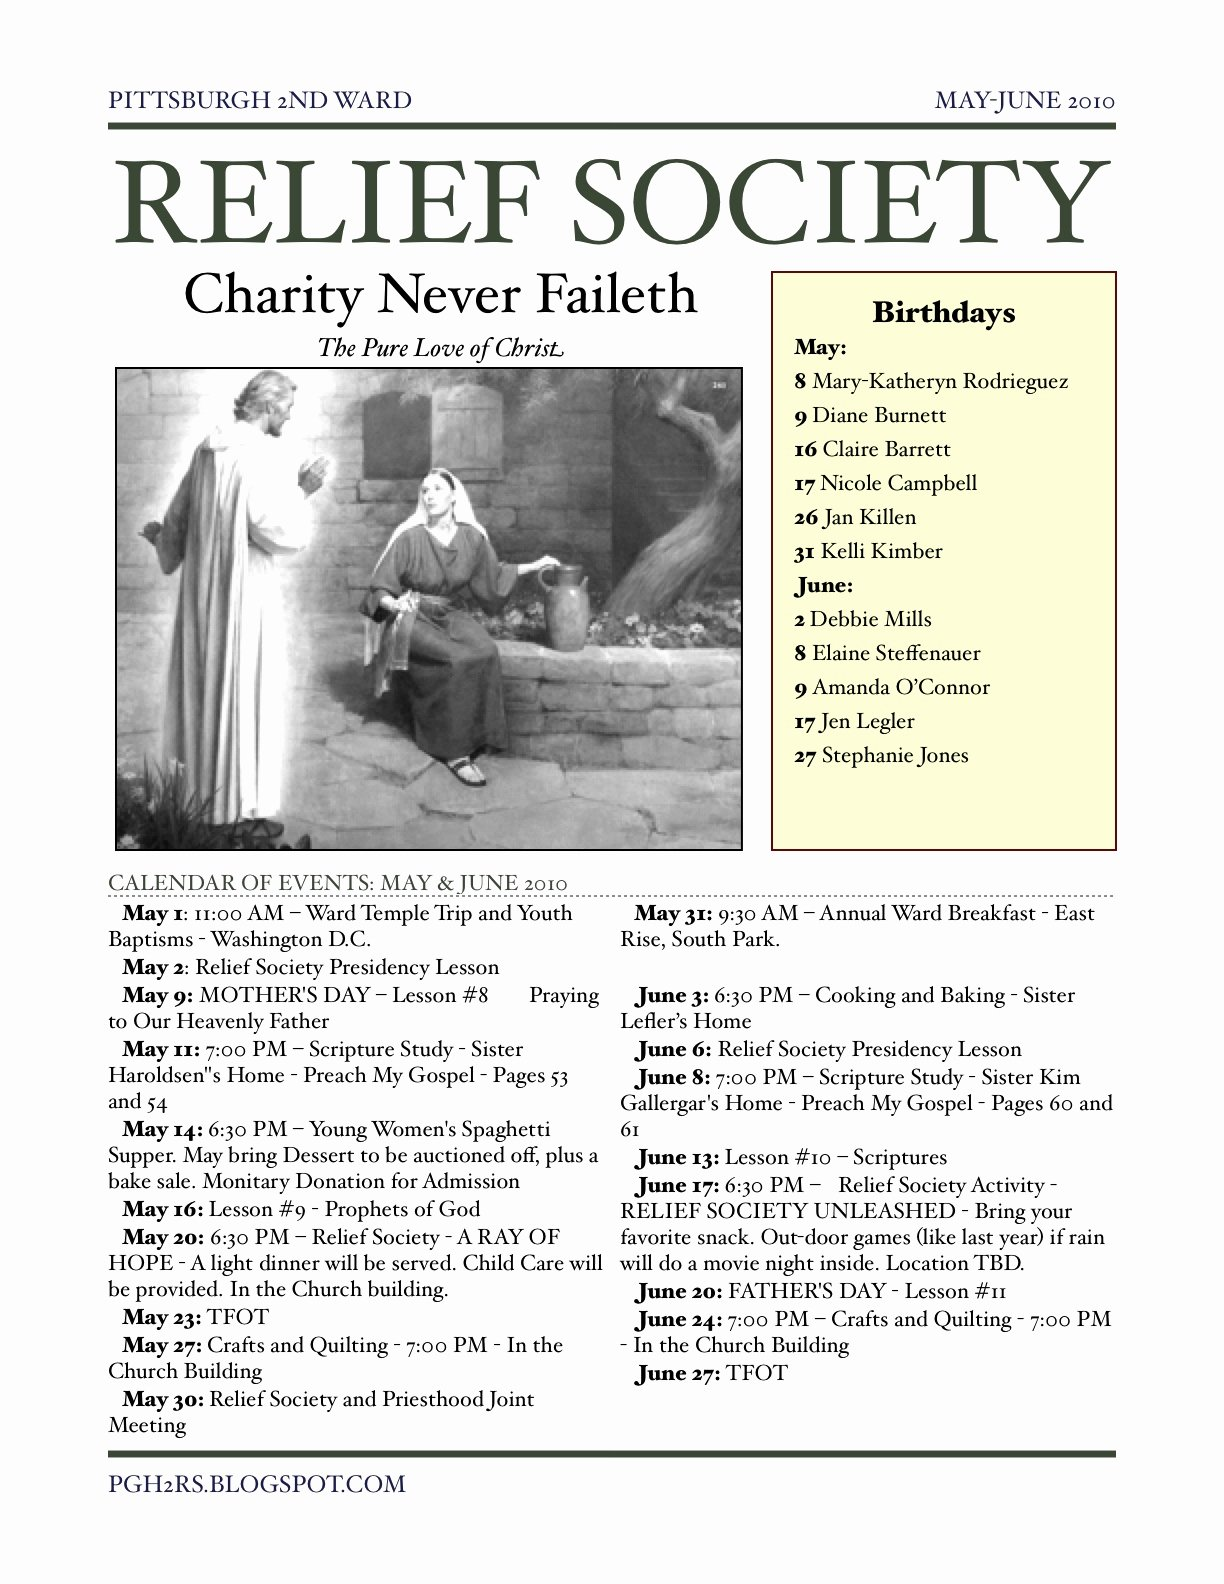 Relief society Newsletters Lovely Pgh2 Relief society